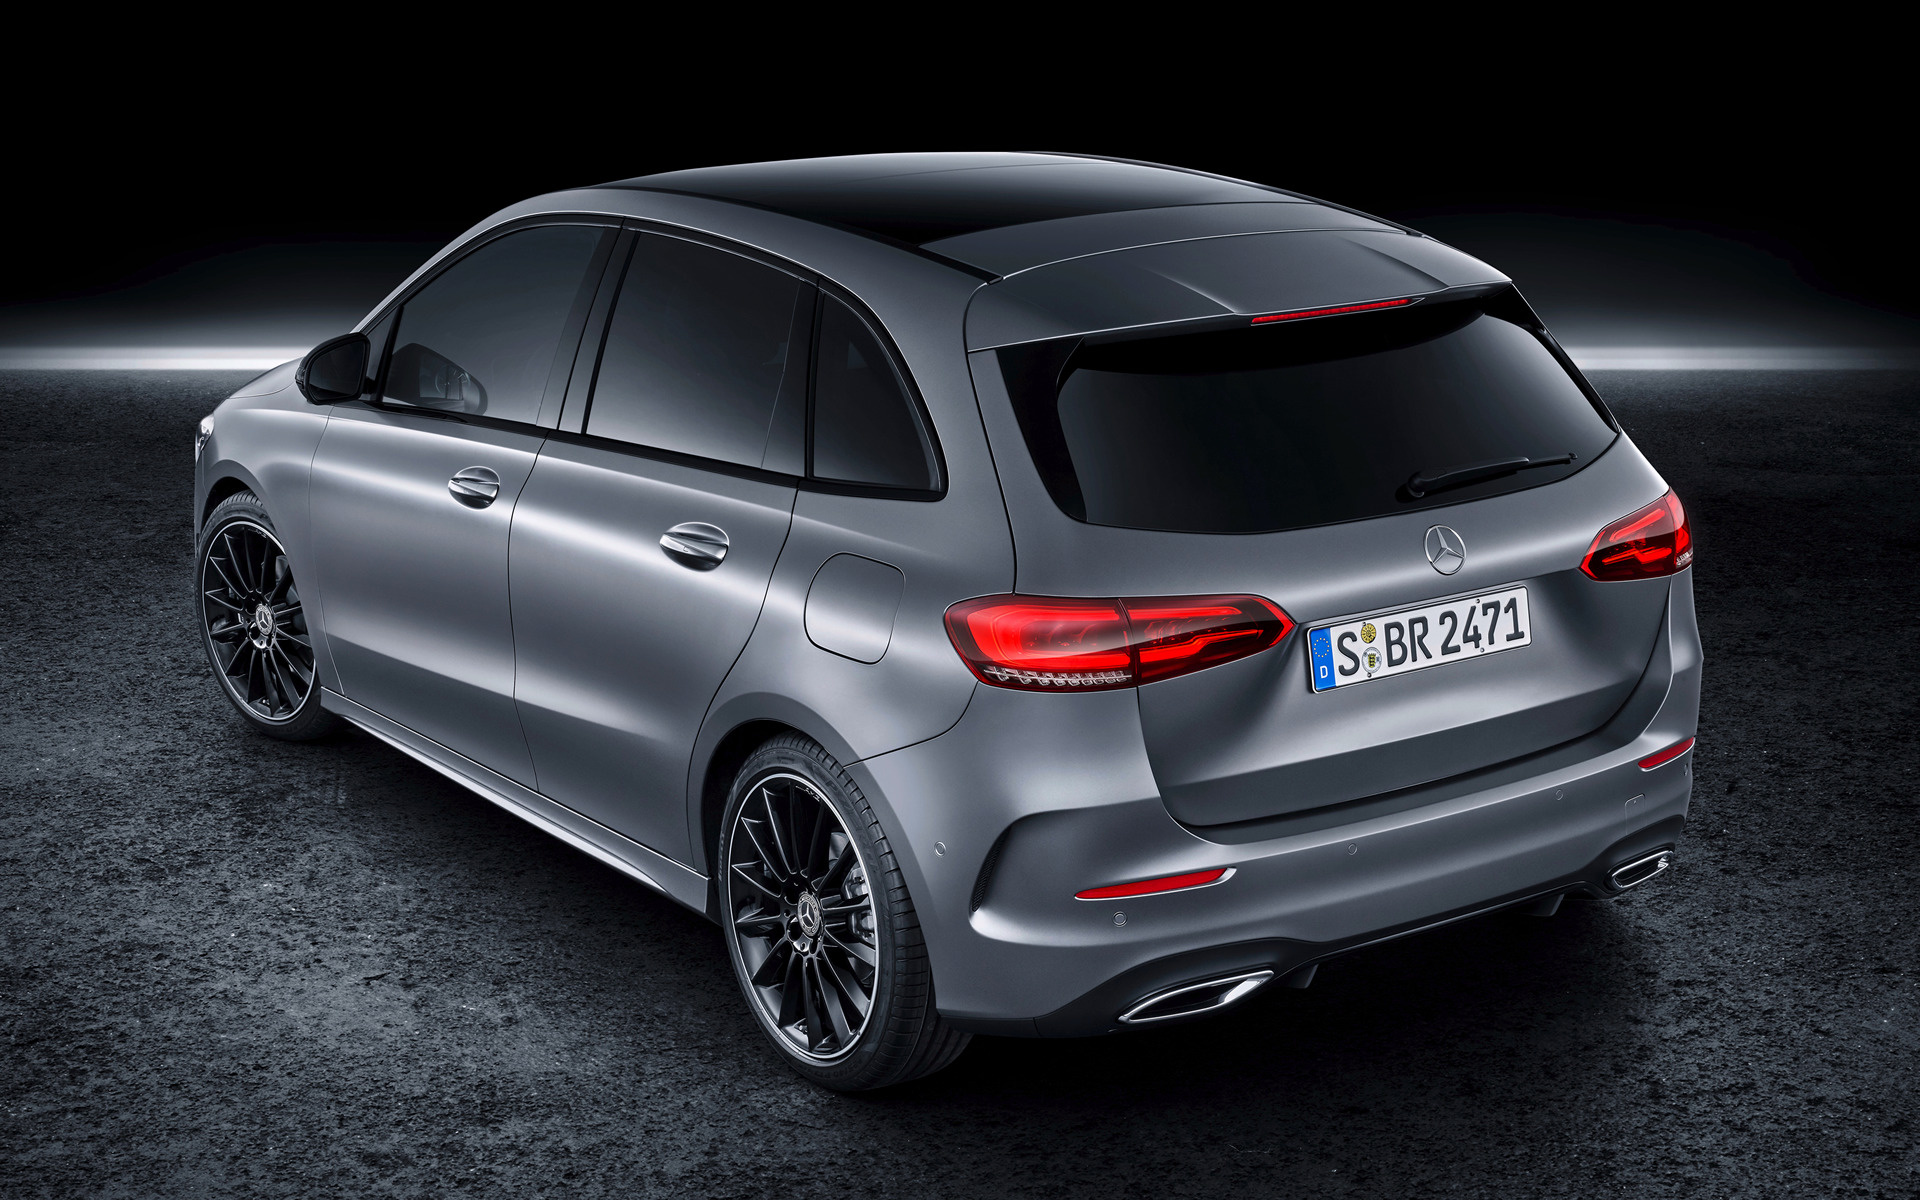 Mercedes-Benz B-Class AMG Line (2019) Wallpapers and HD Images - Car Pixel